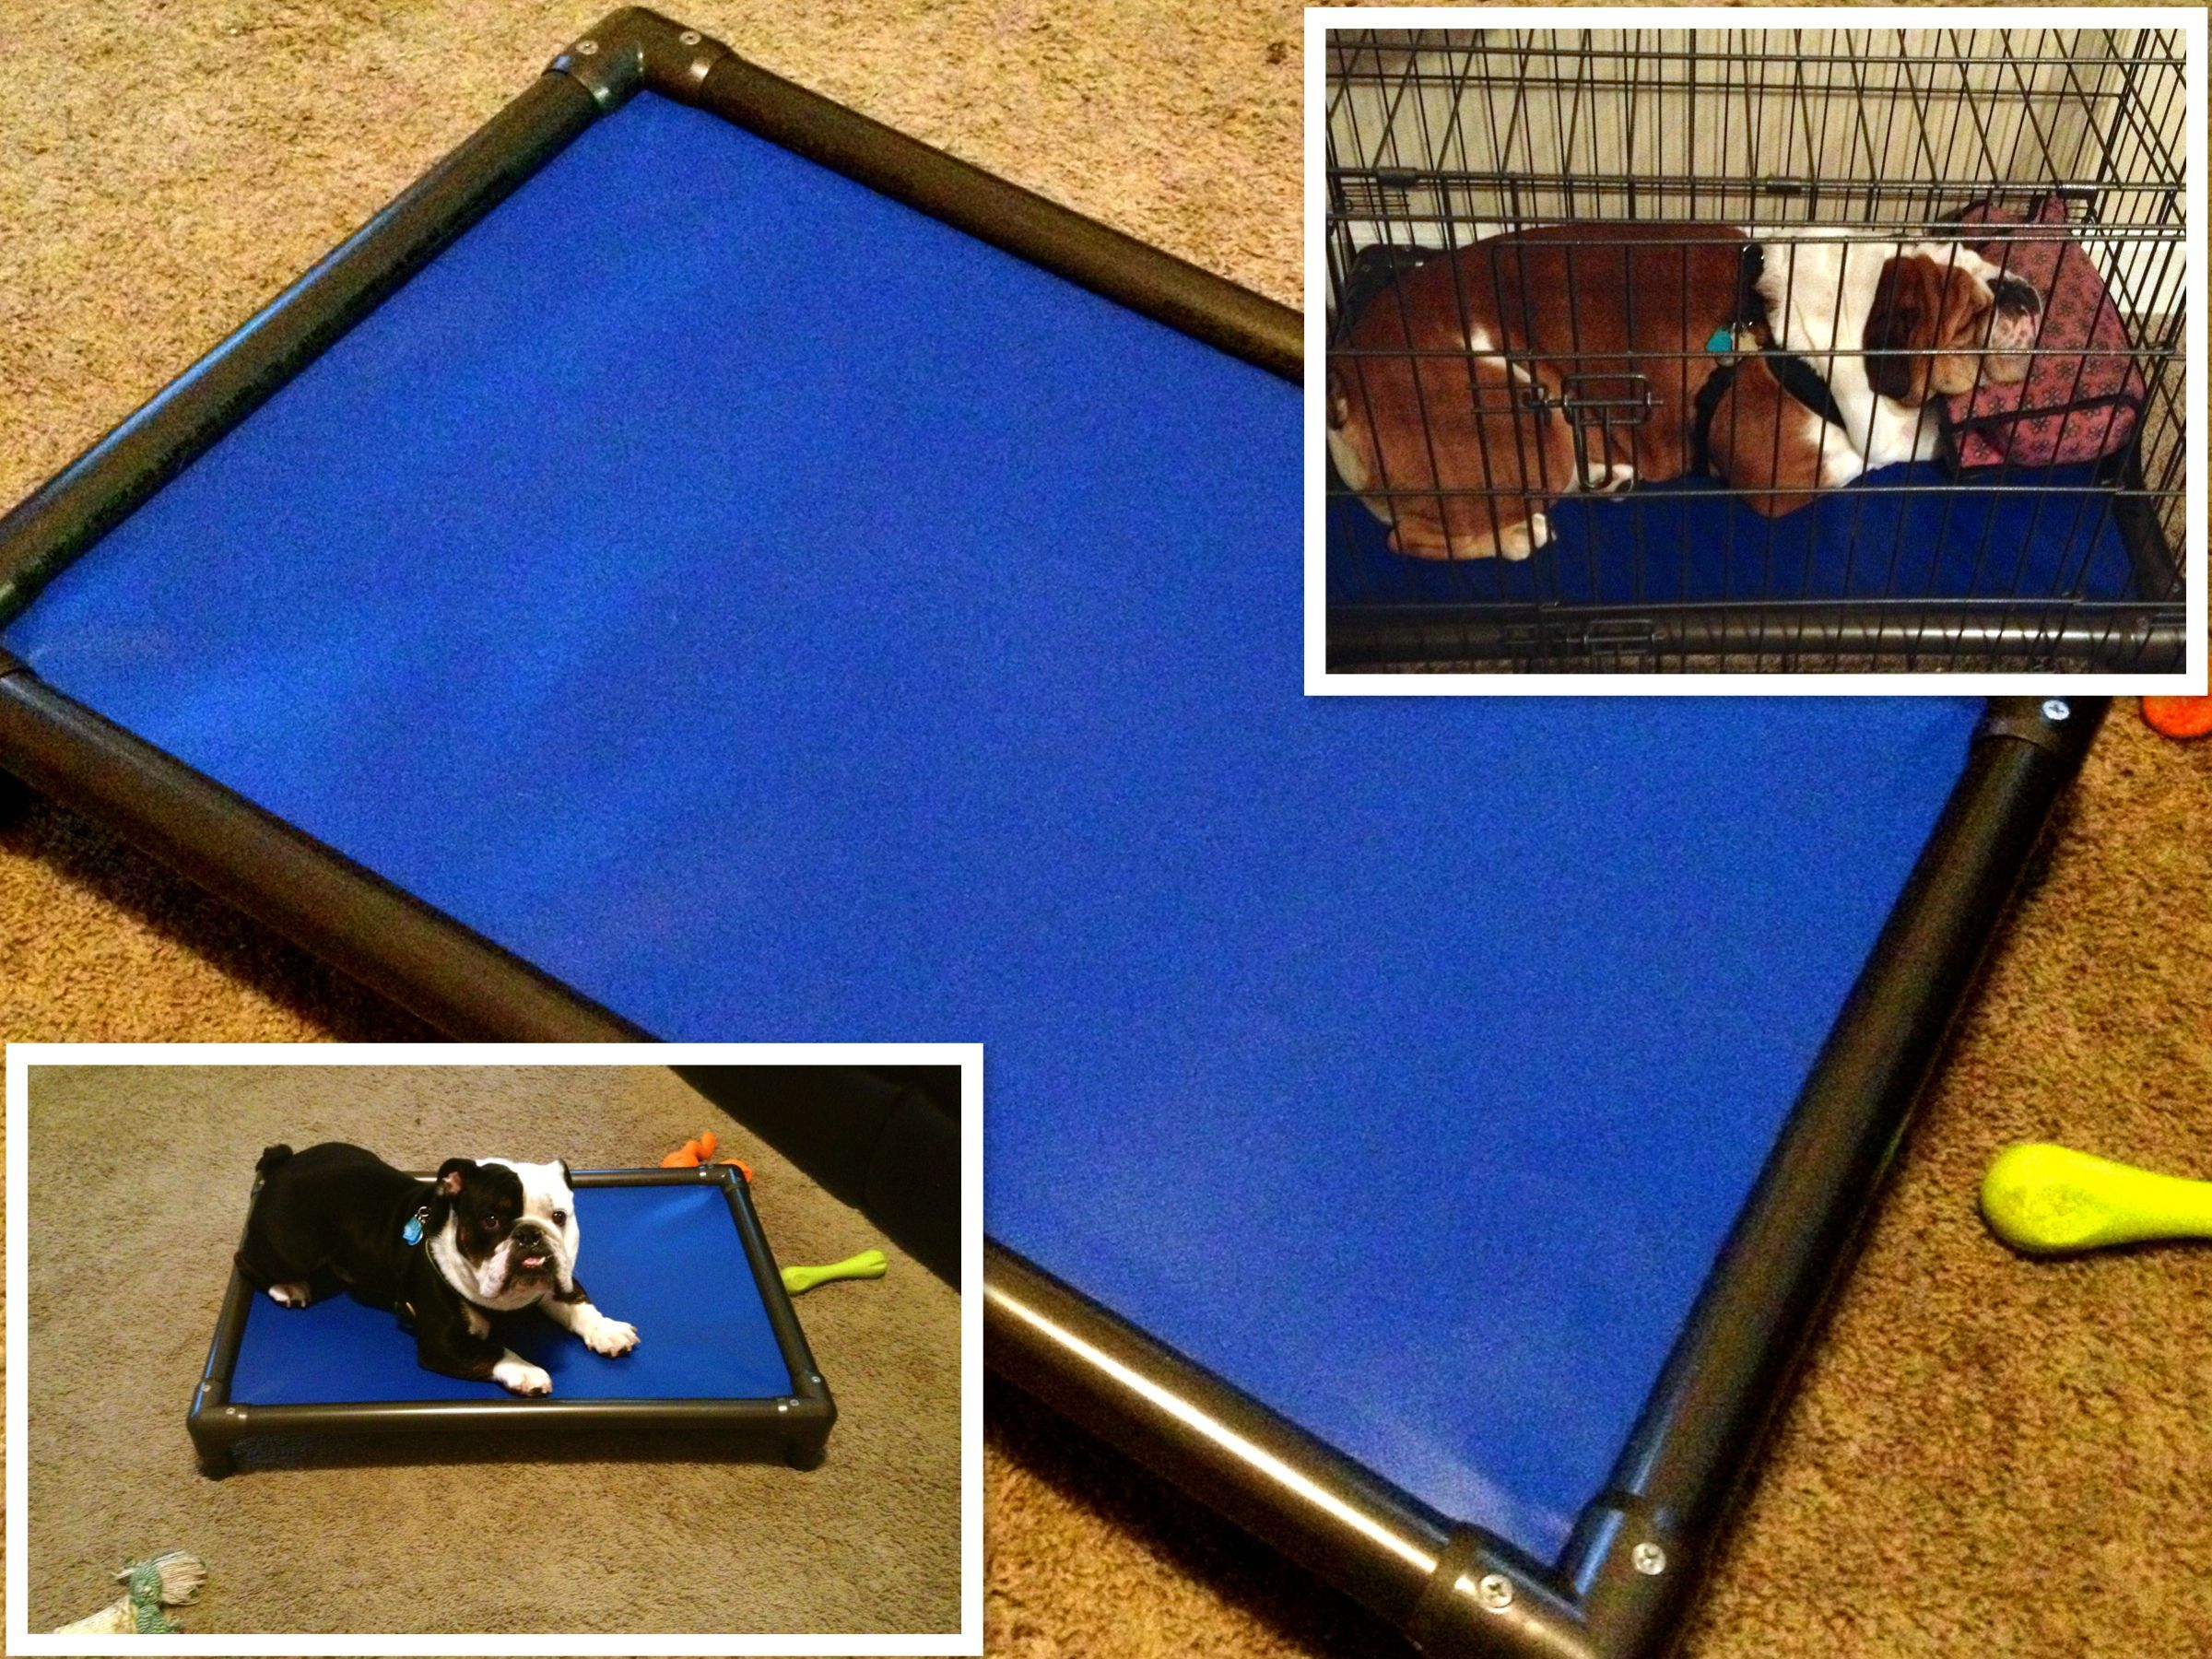 Kuranda Dog Beds Orthopedic Chew Proof Easy To Clean We Love Them And So Do Our Dogs Dogtrainingchew Chew Proof Dog Bed Kuranda Dog Beds Tough Dog Beds